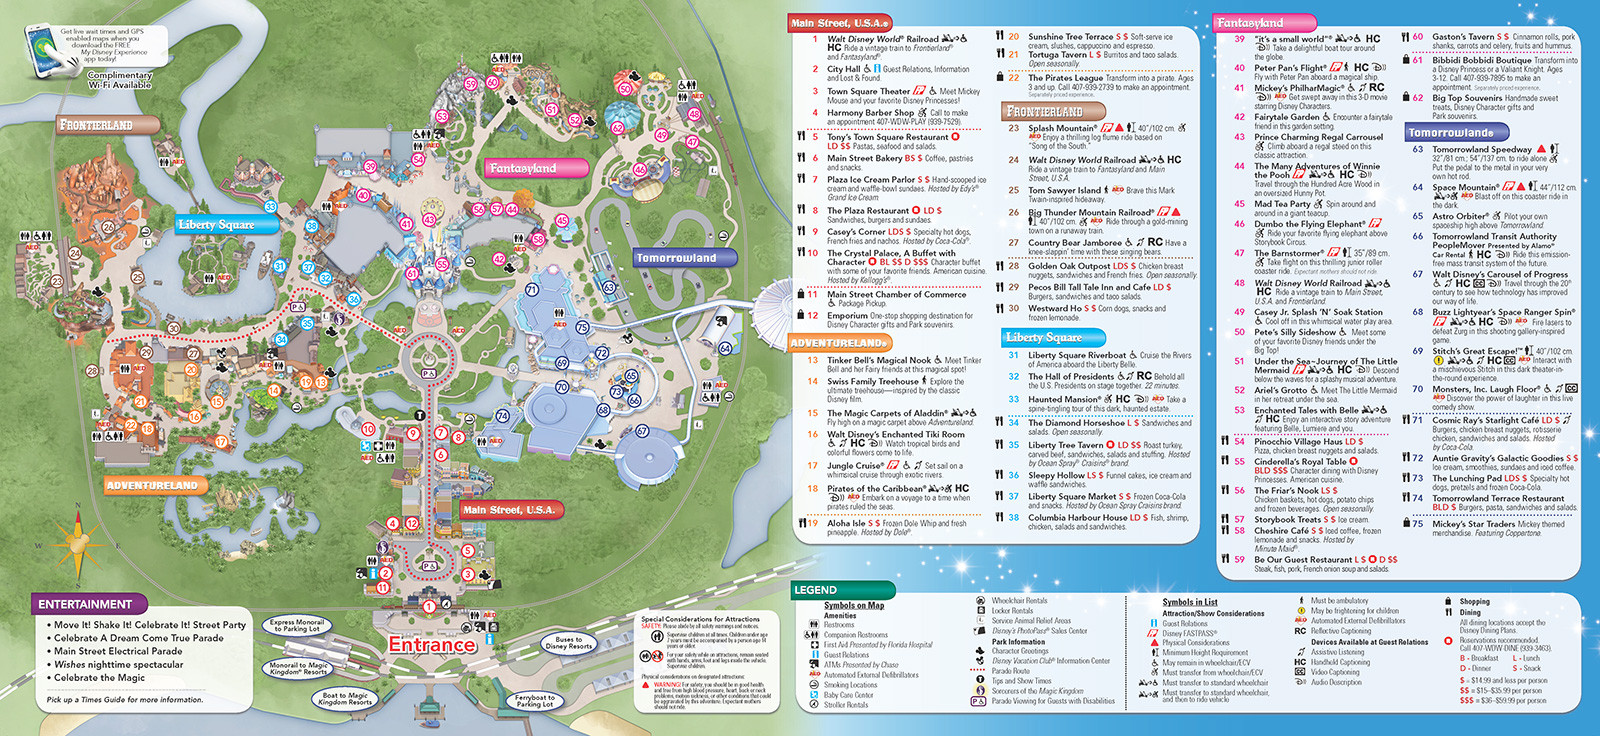 New 2013 Park Maps and Times Guides 4 of 20